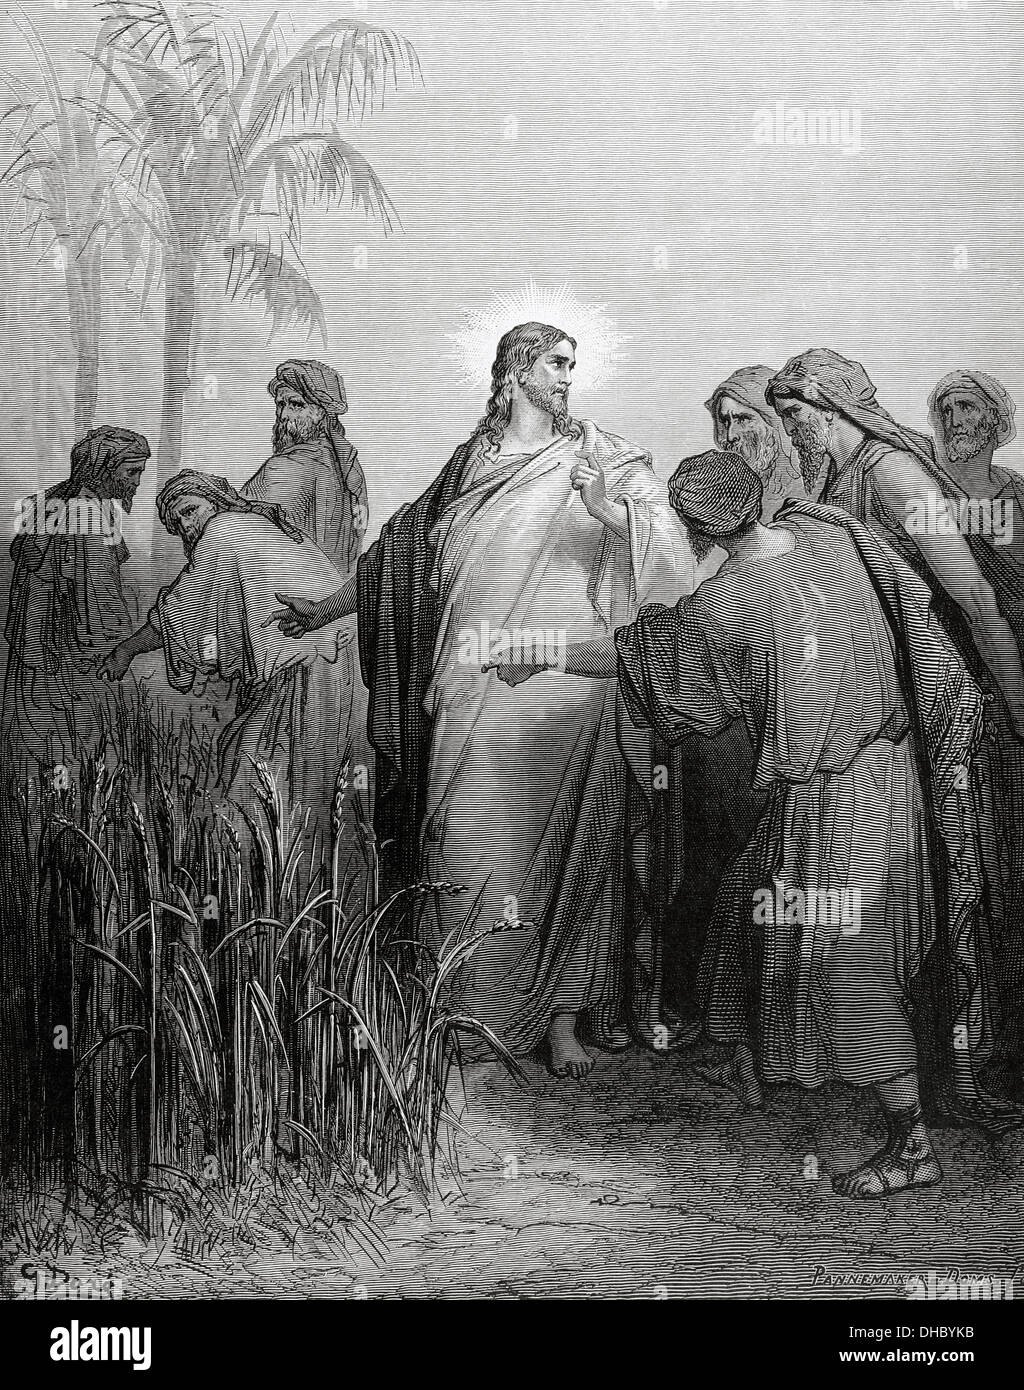 New Testament. Gospel of Matthew. Chapter XII. The apostles gathered ears in the day of rest. Engraving. - Stock Image